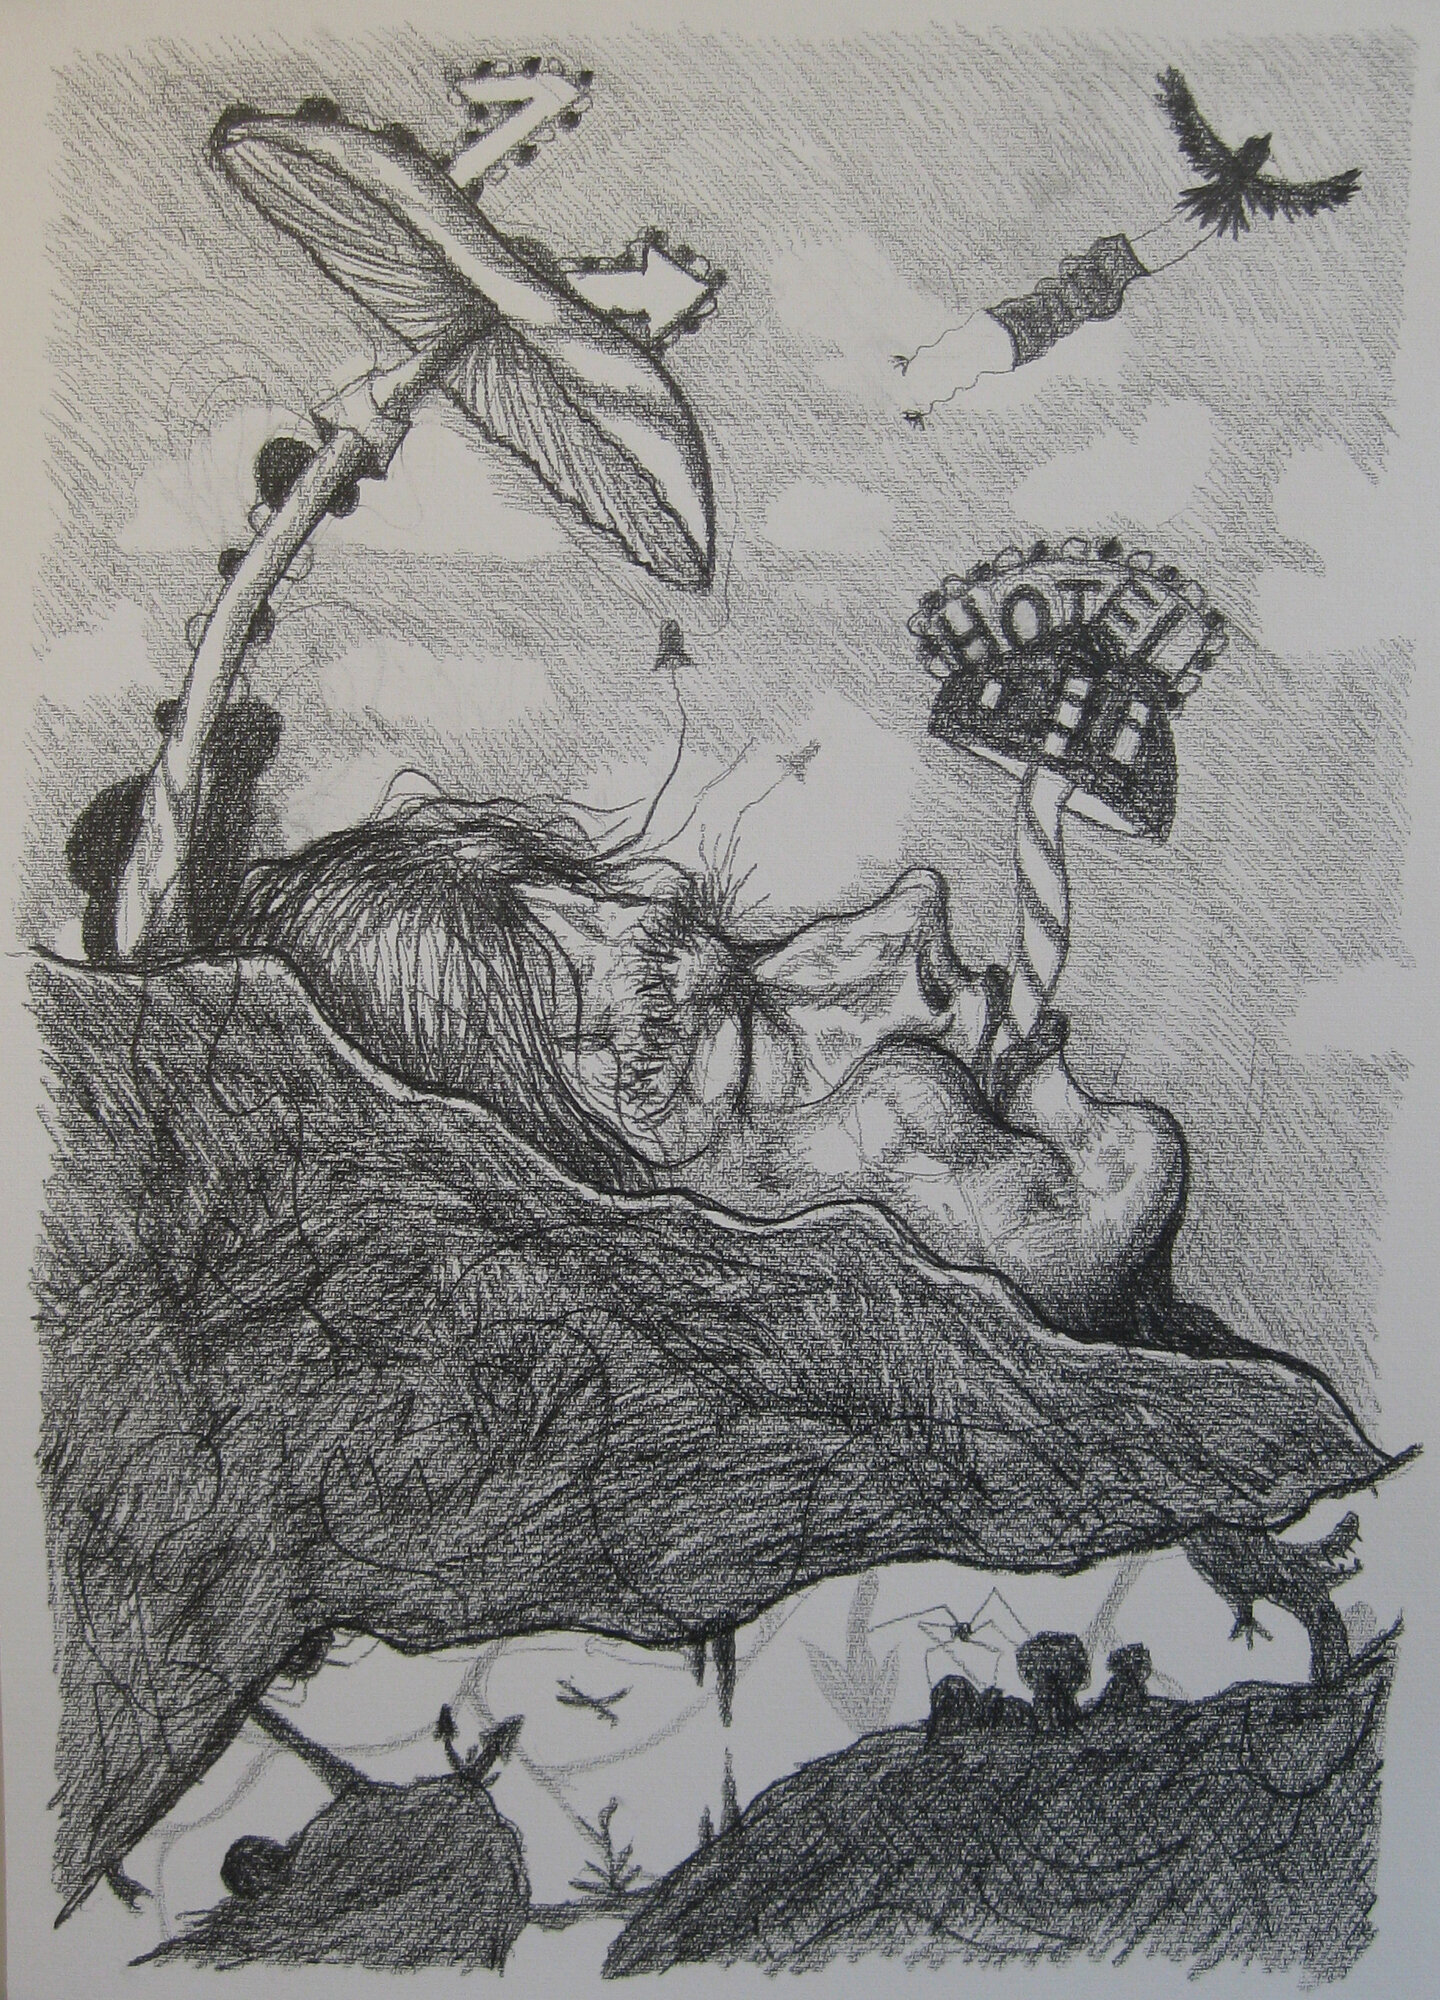 Funeral 70 x 100 cm graphite on paper